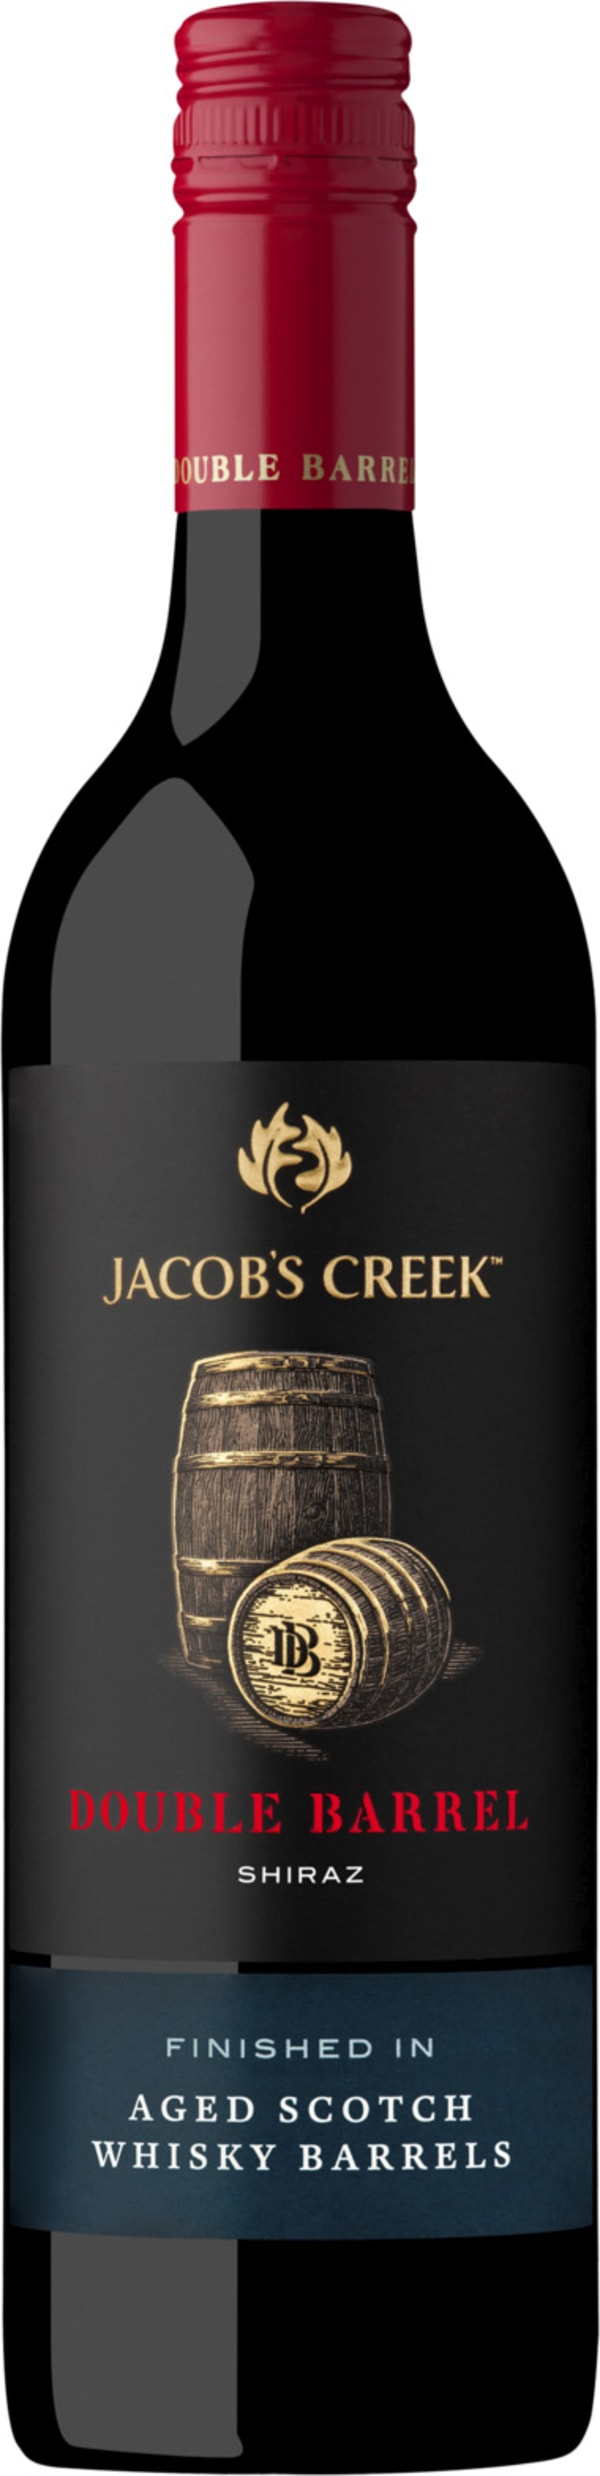 Jacob's Creek Double Barrel Shiraz  2015